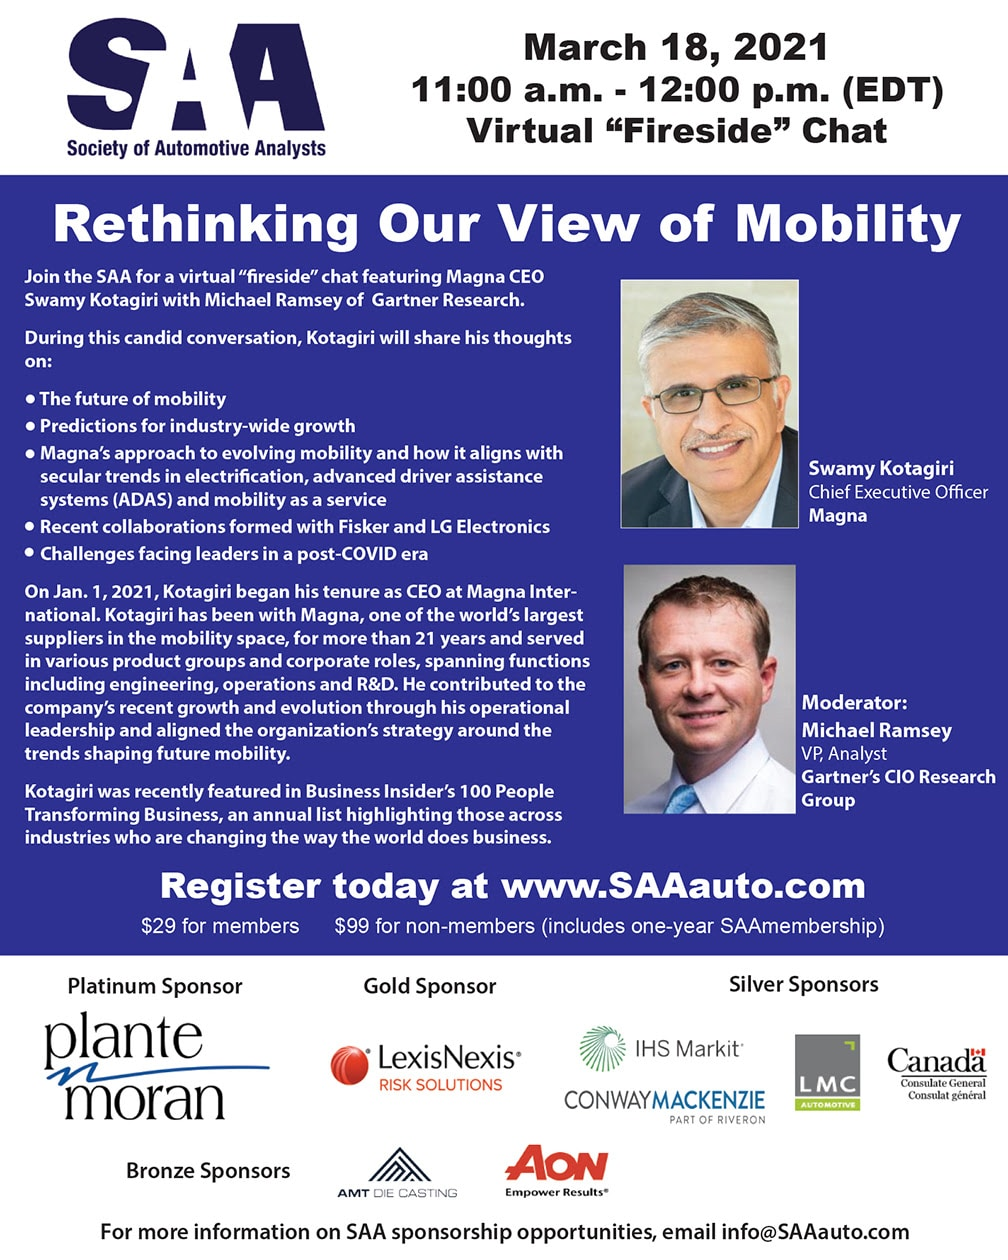 Rethinking Our View of Mobility Virtual Fireside Chat